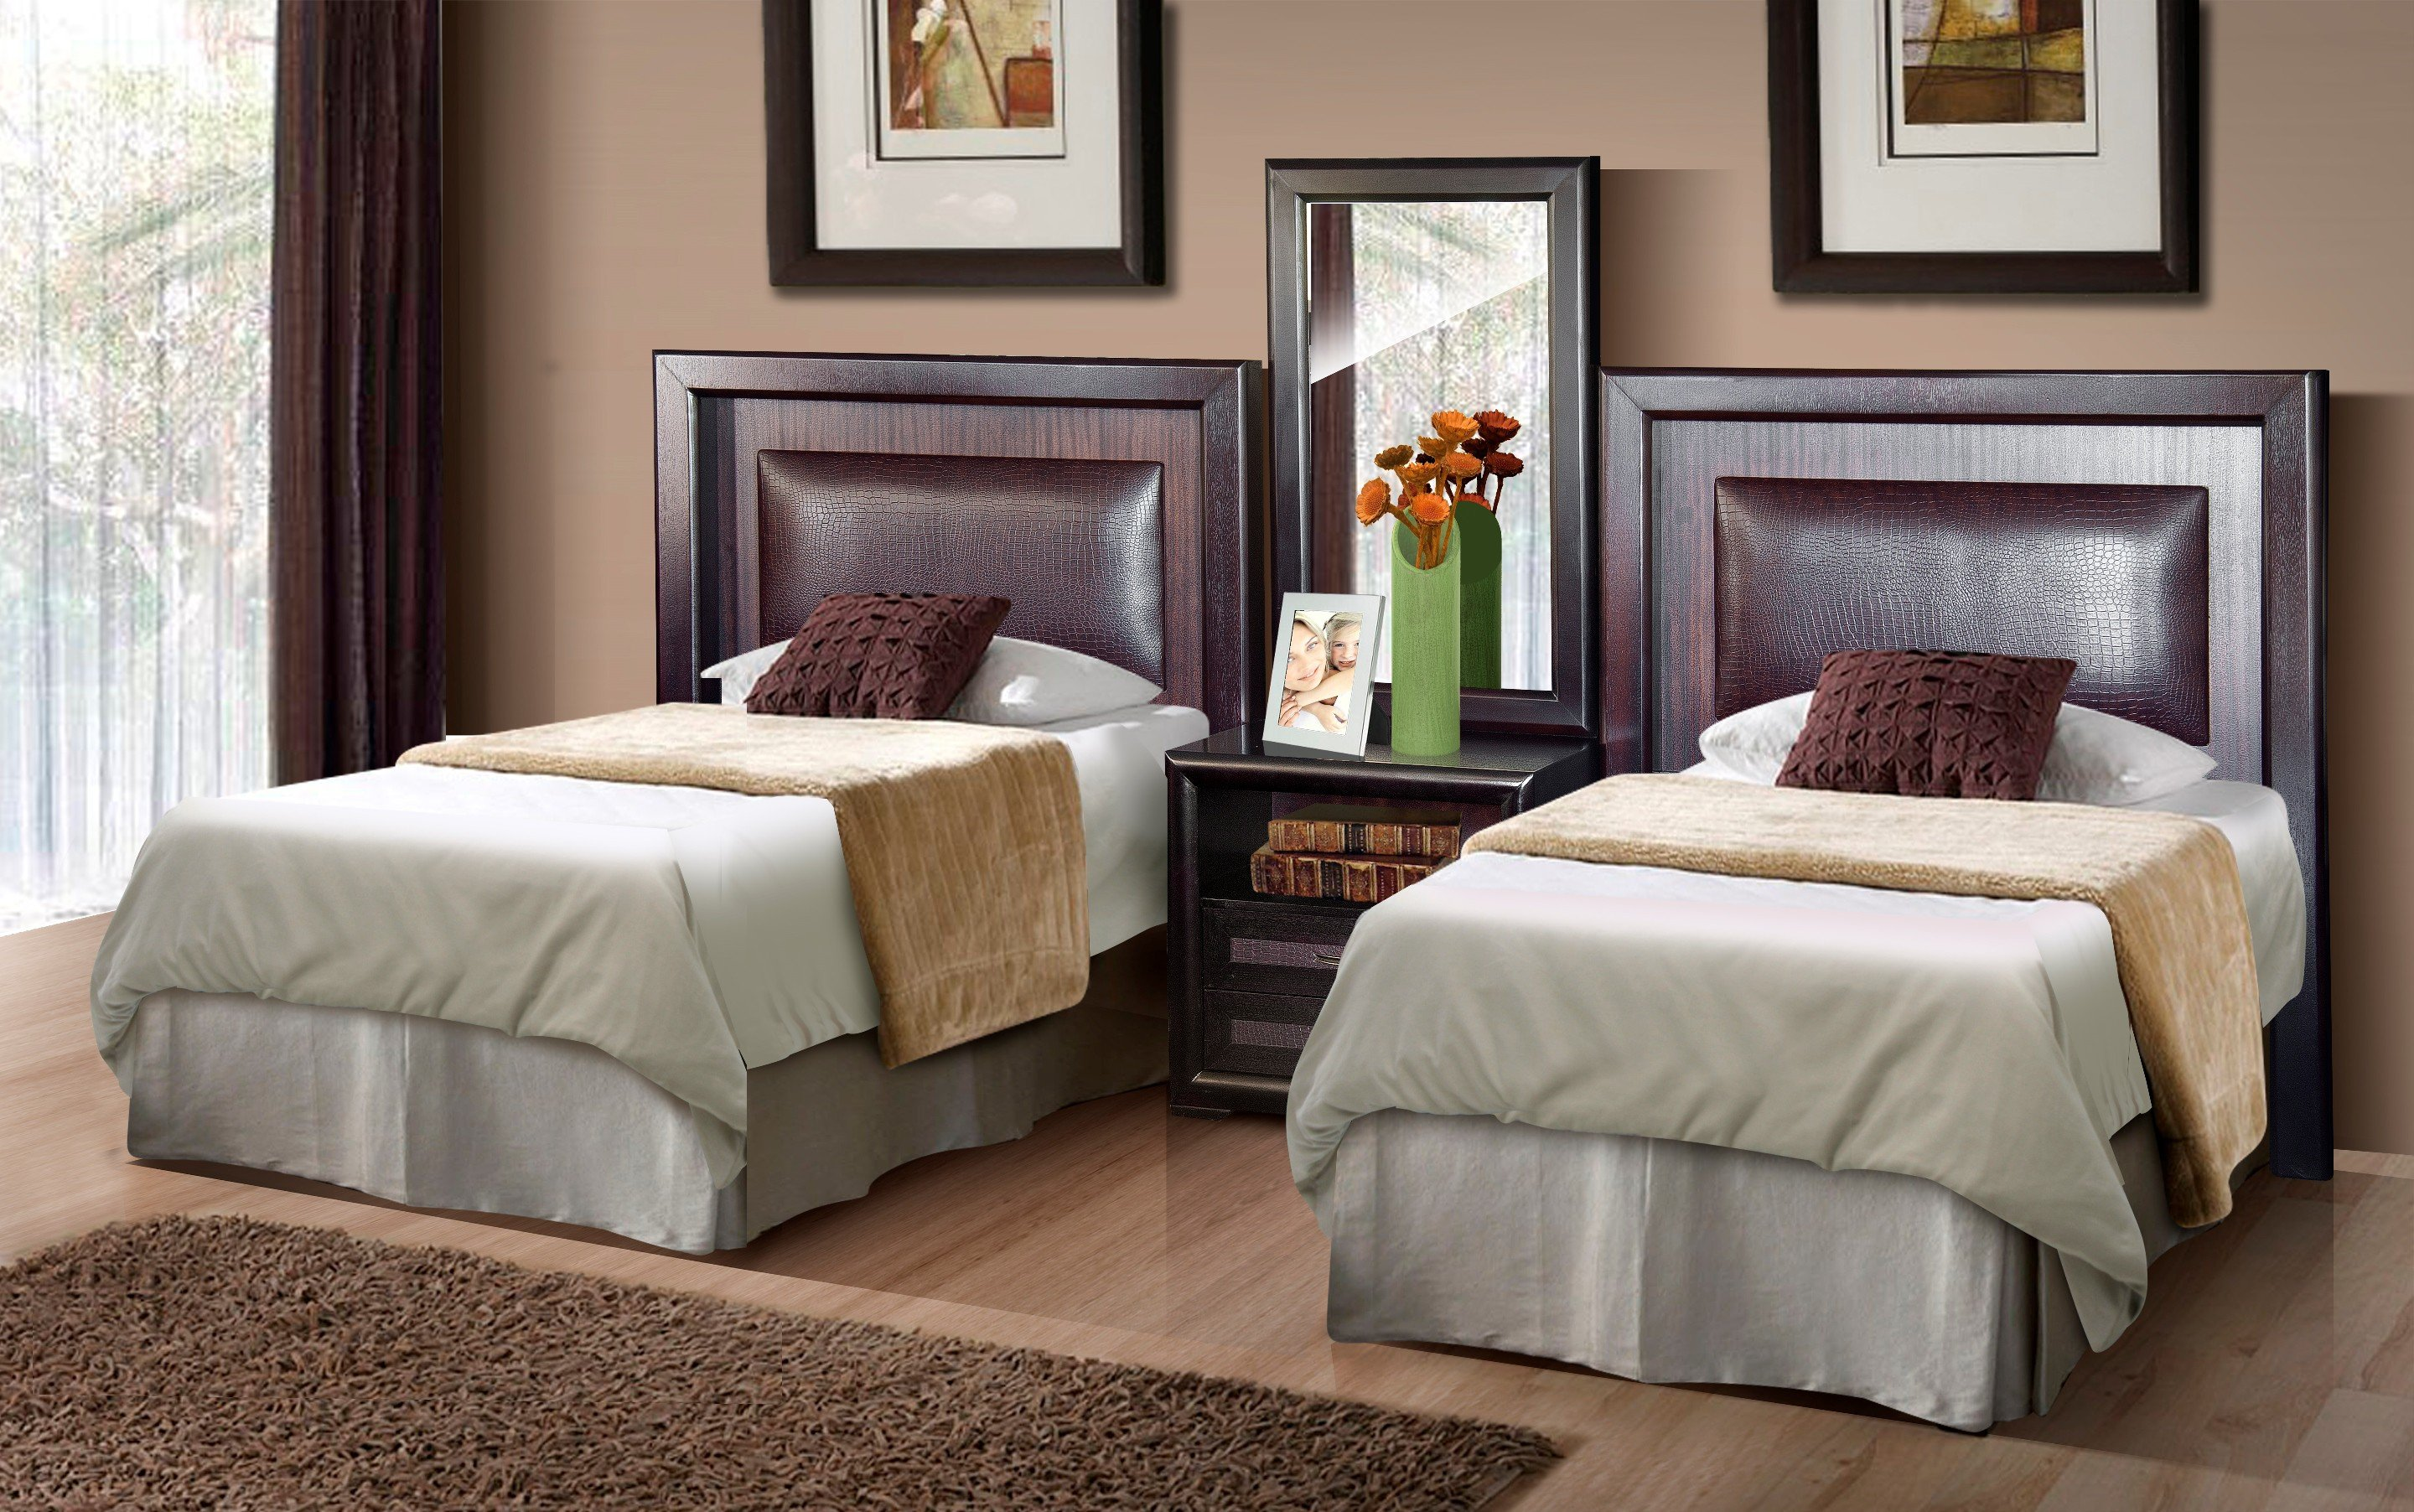 Classic Bedroom Decorating Ideas Twin Headboard For Decorative And Practical Values Homesfeed